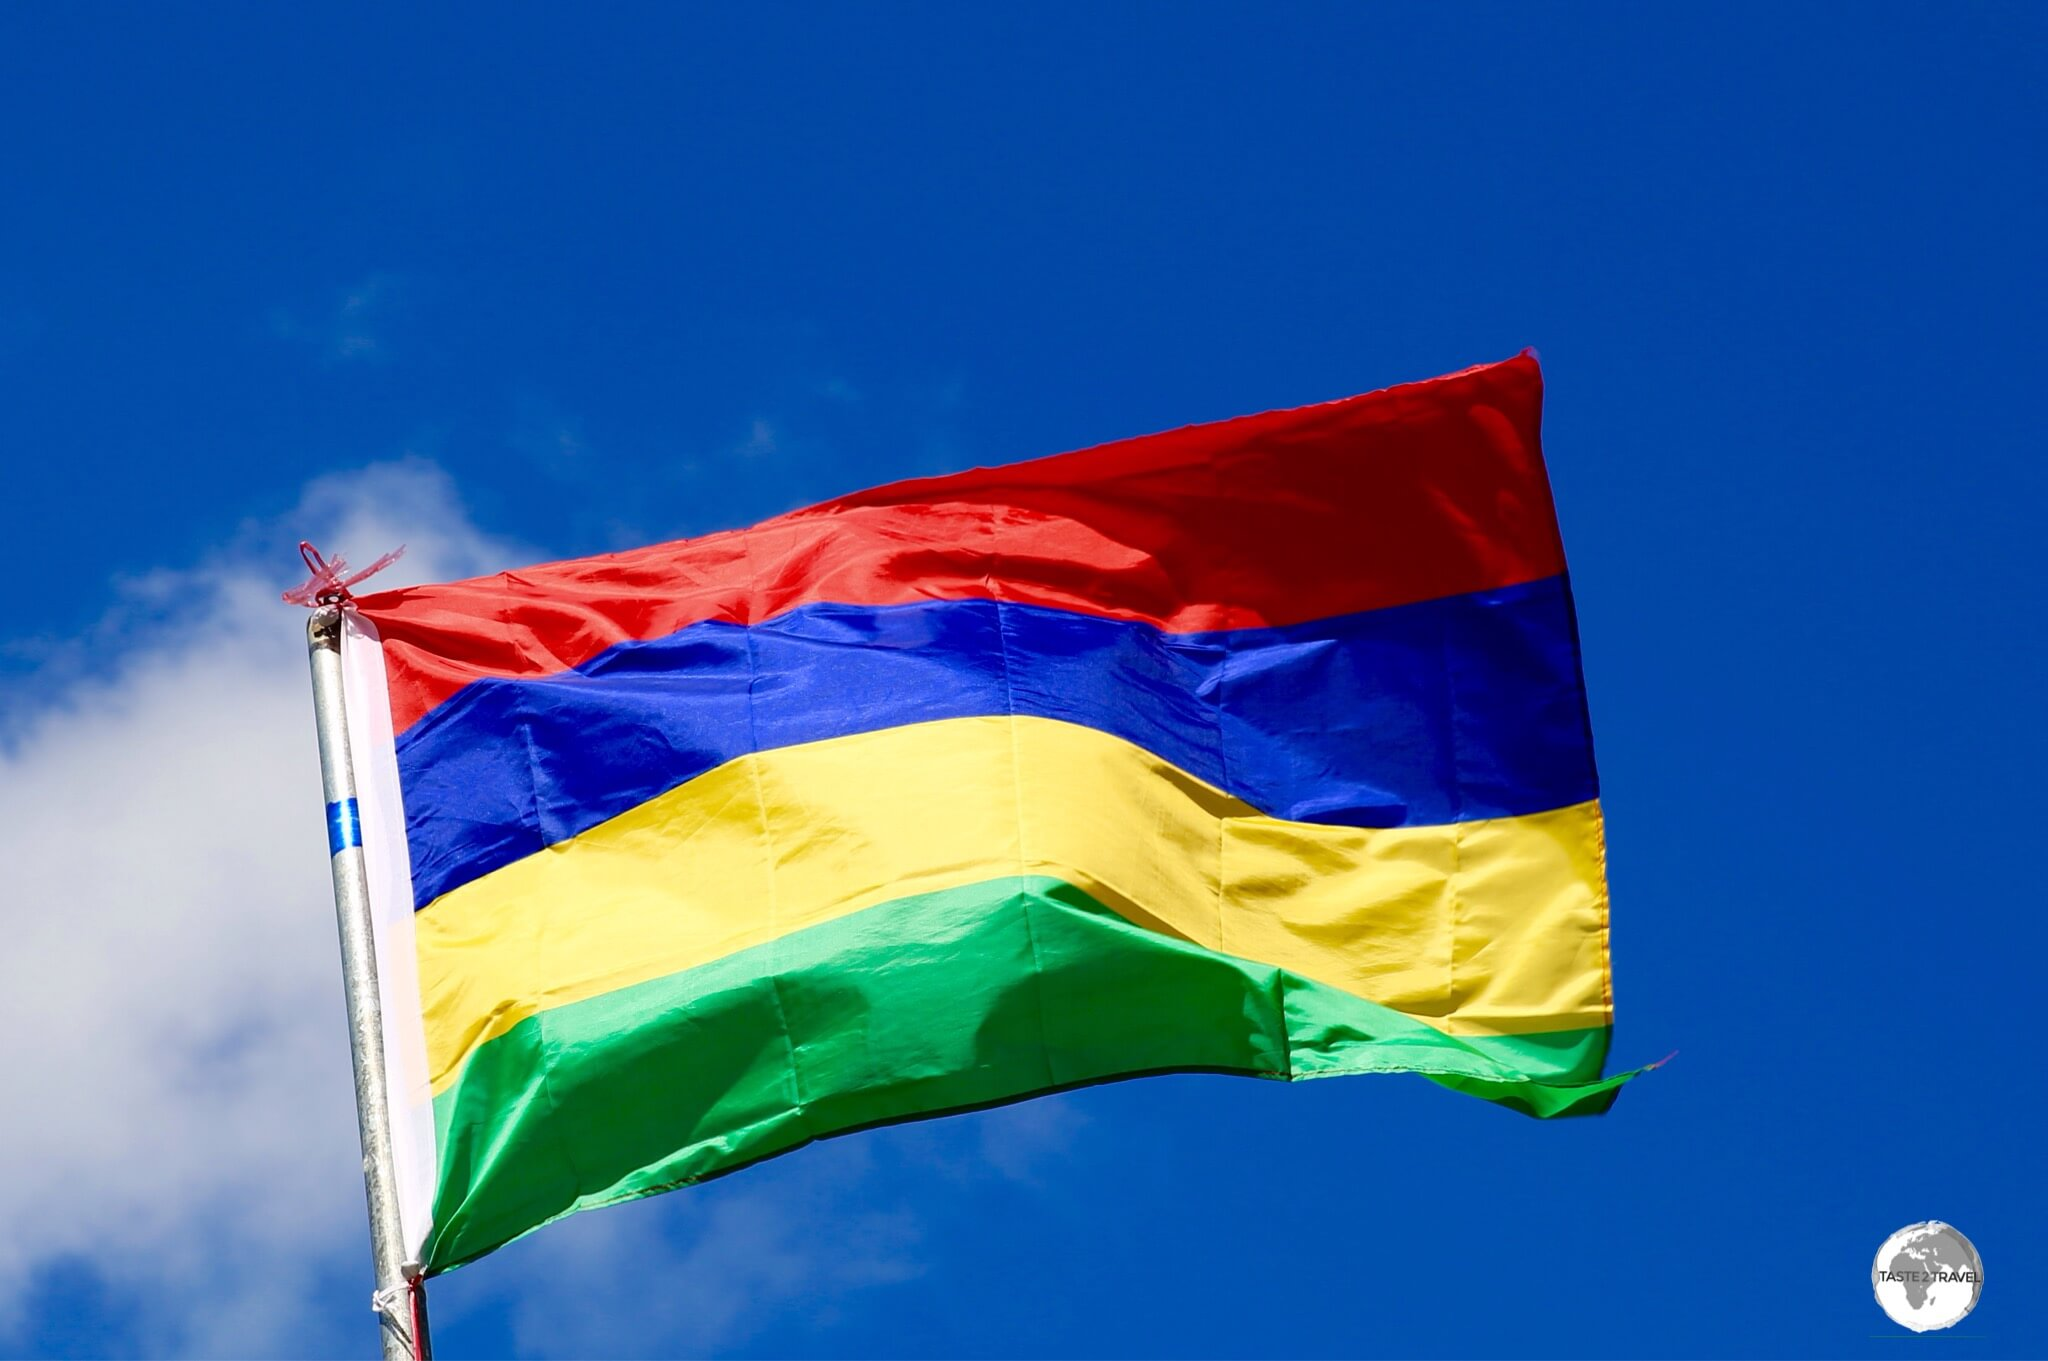 The flag of Mauritius is known as the 'Four Bands'.